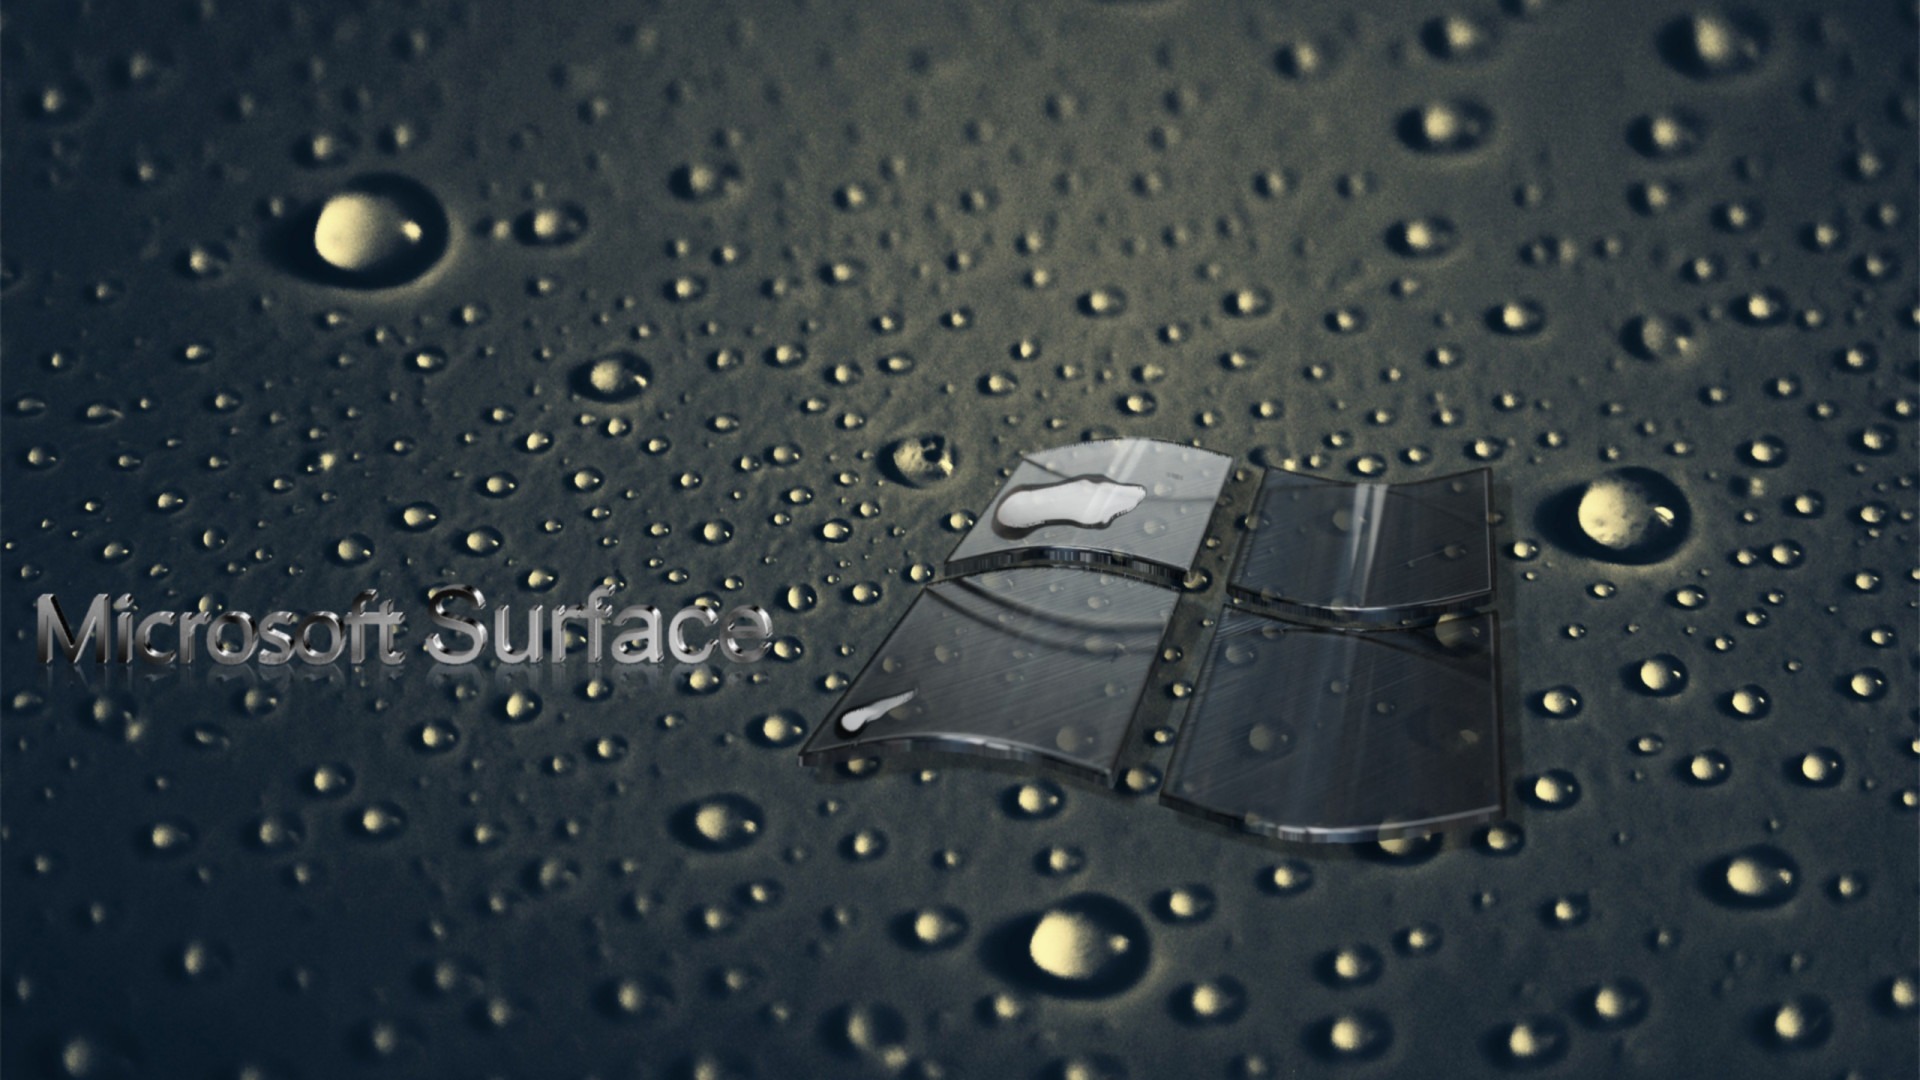 hd wallpapers background surface -#main